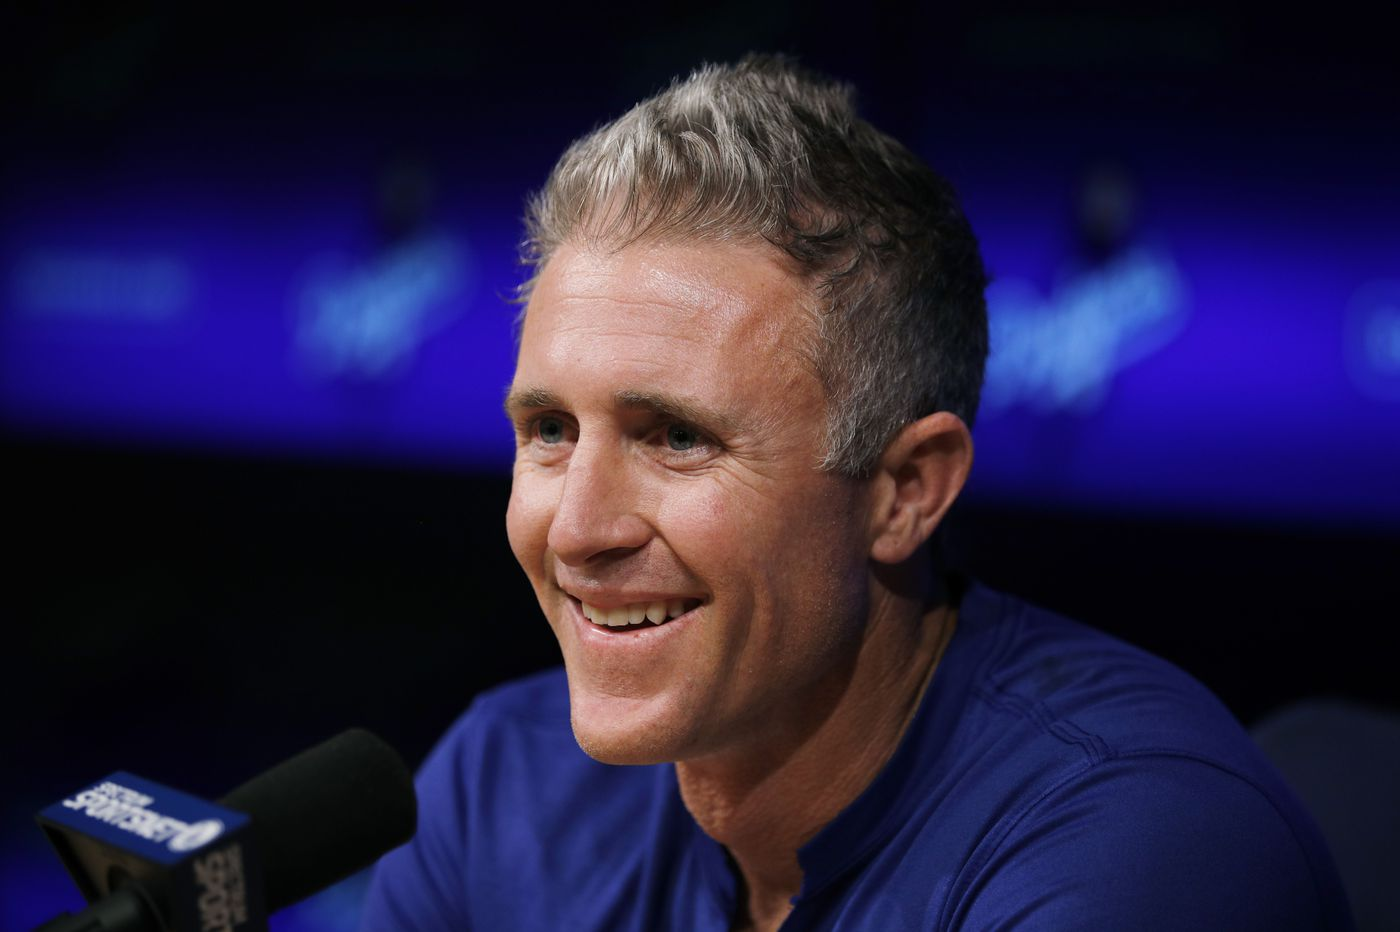 Chase Utley's retirement announcement again shows his feel for the moment | David Murphy